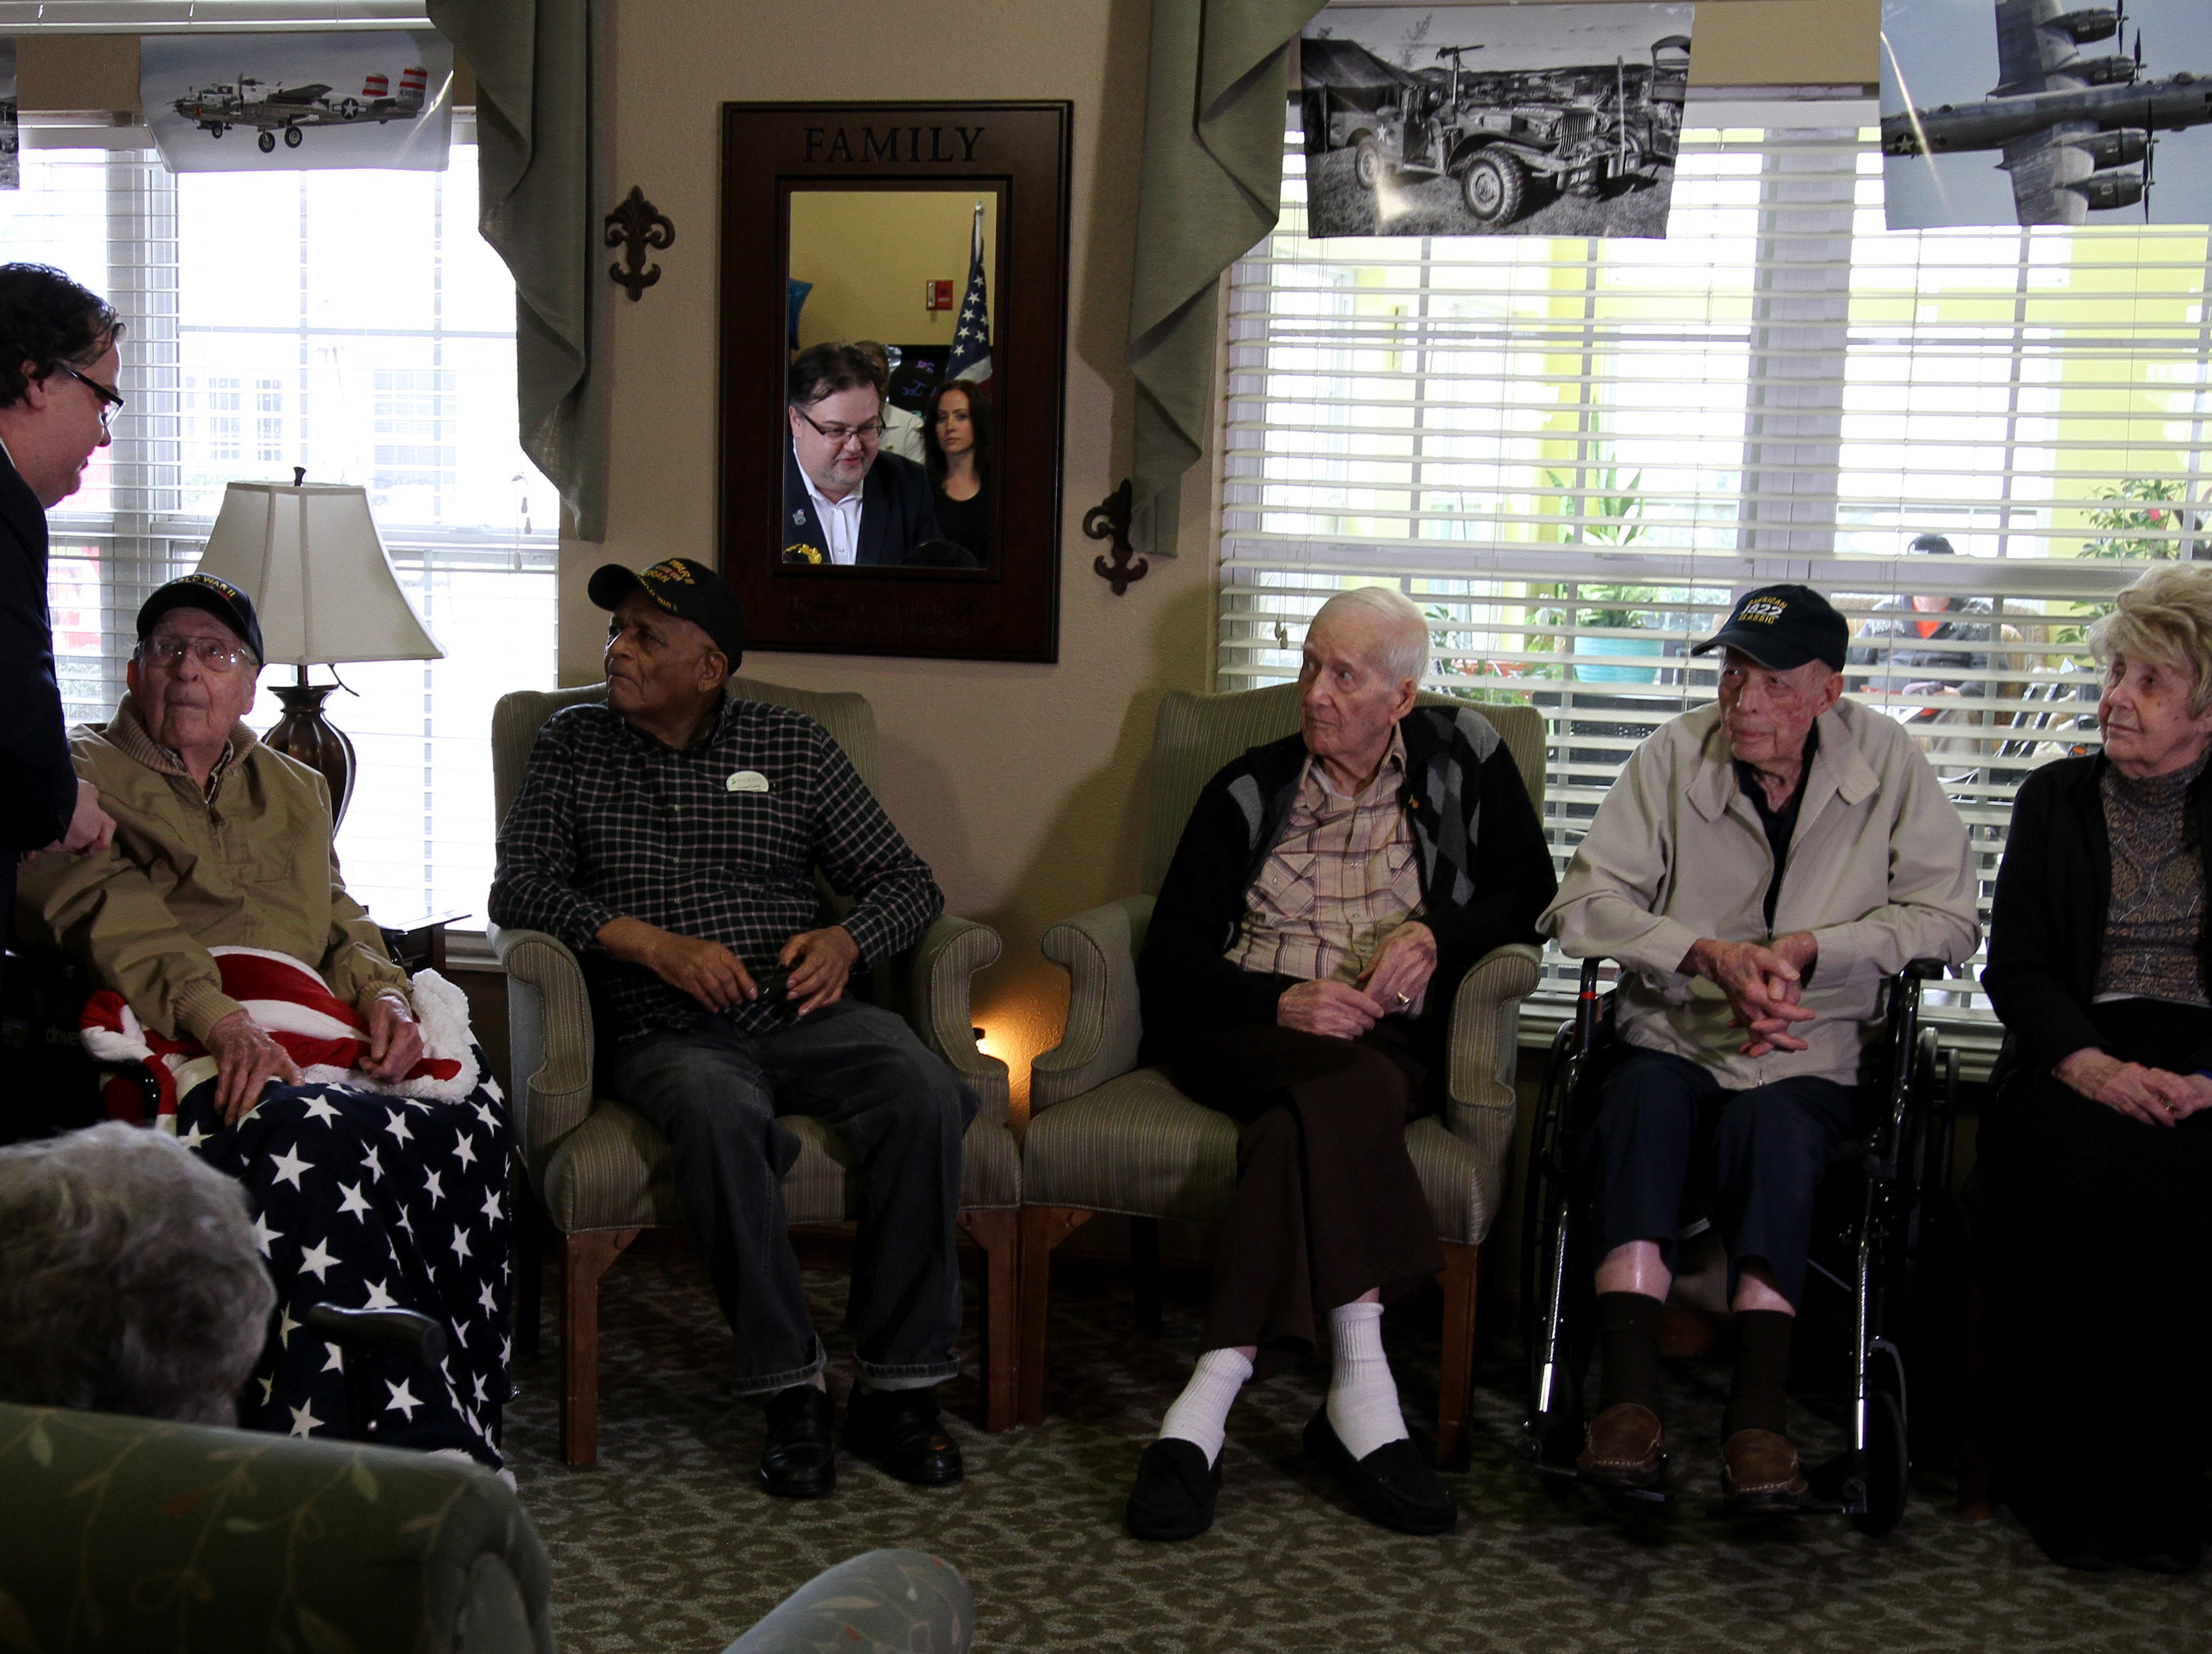 The Airpower foundation gave life chests to WWII veterans Joe Cuba, Vivian Young, Bill Moddy, Harry Cobble and Olivia Woodruff at Cuba's 100th birthday party Saturday, March 2, 2019, at Brookdale Midwestern.